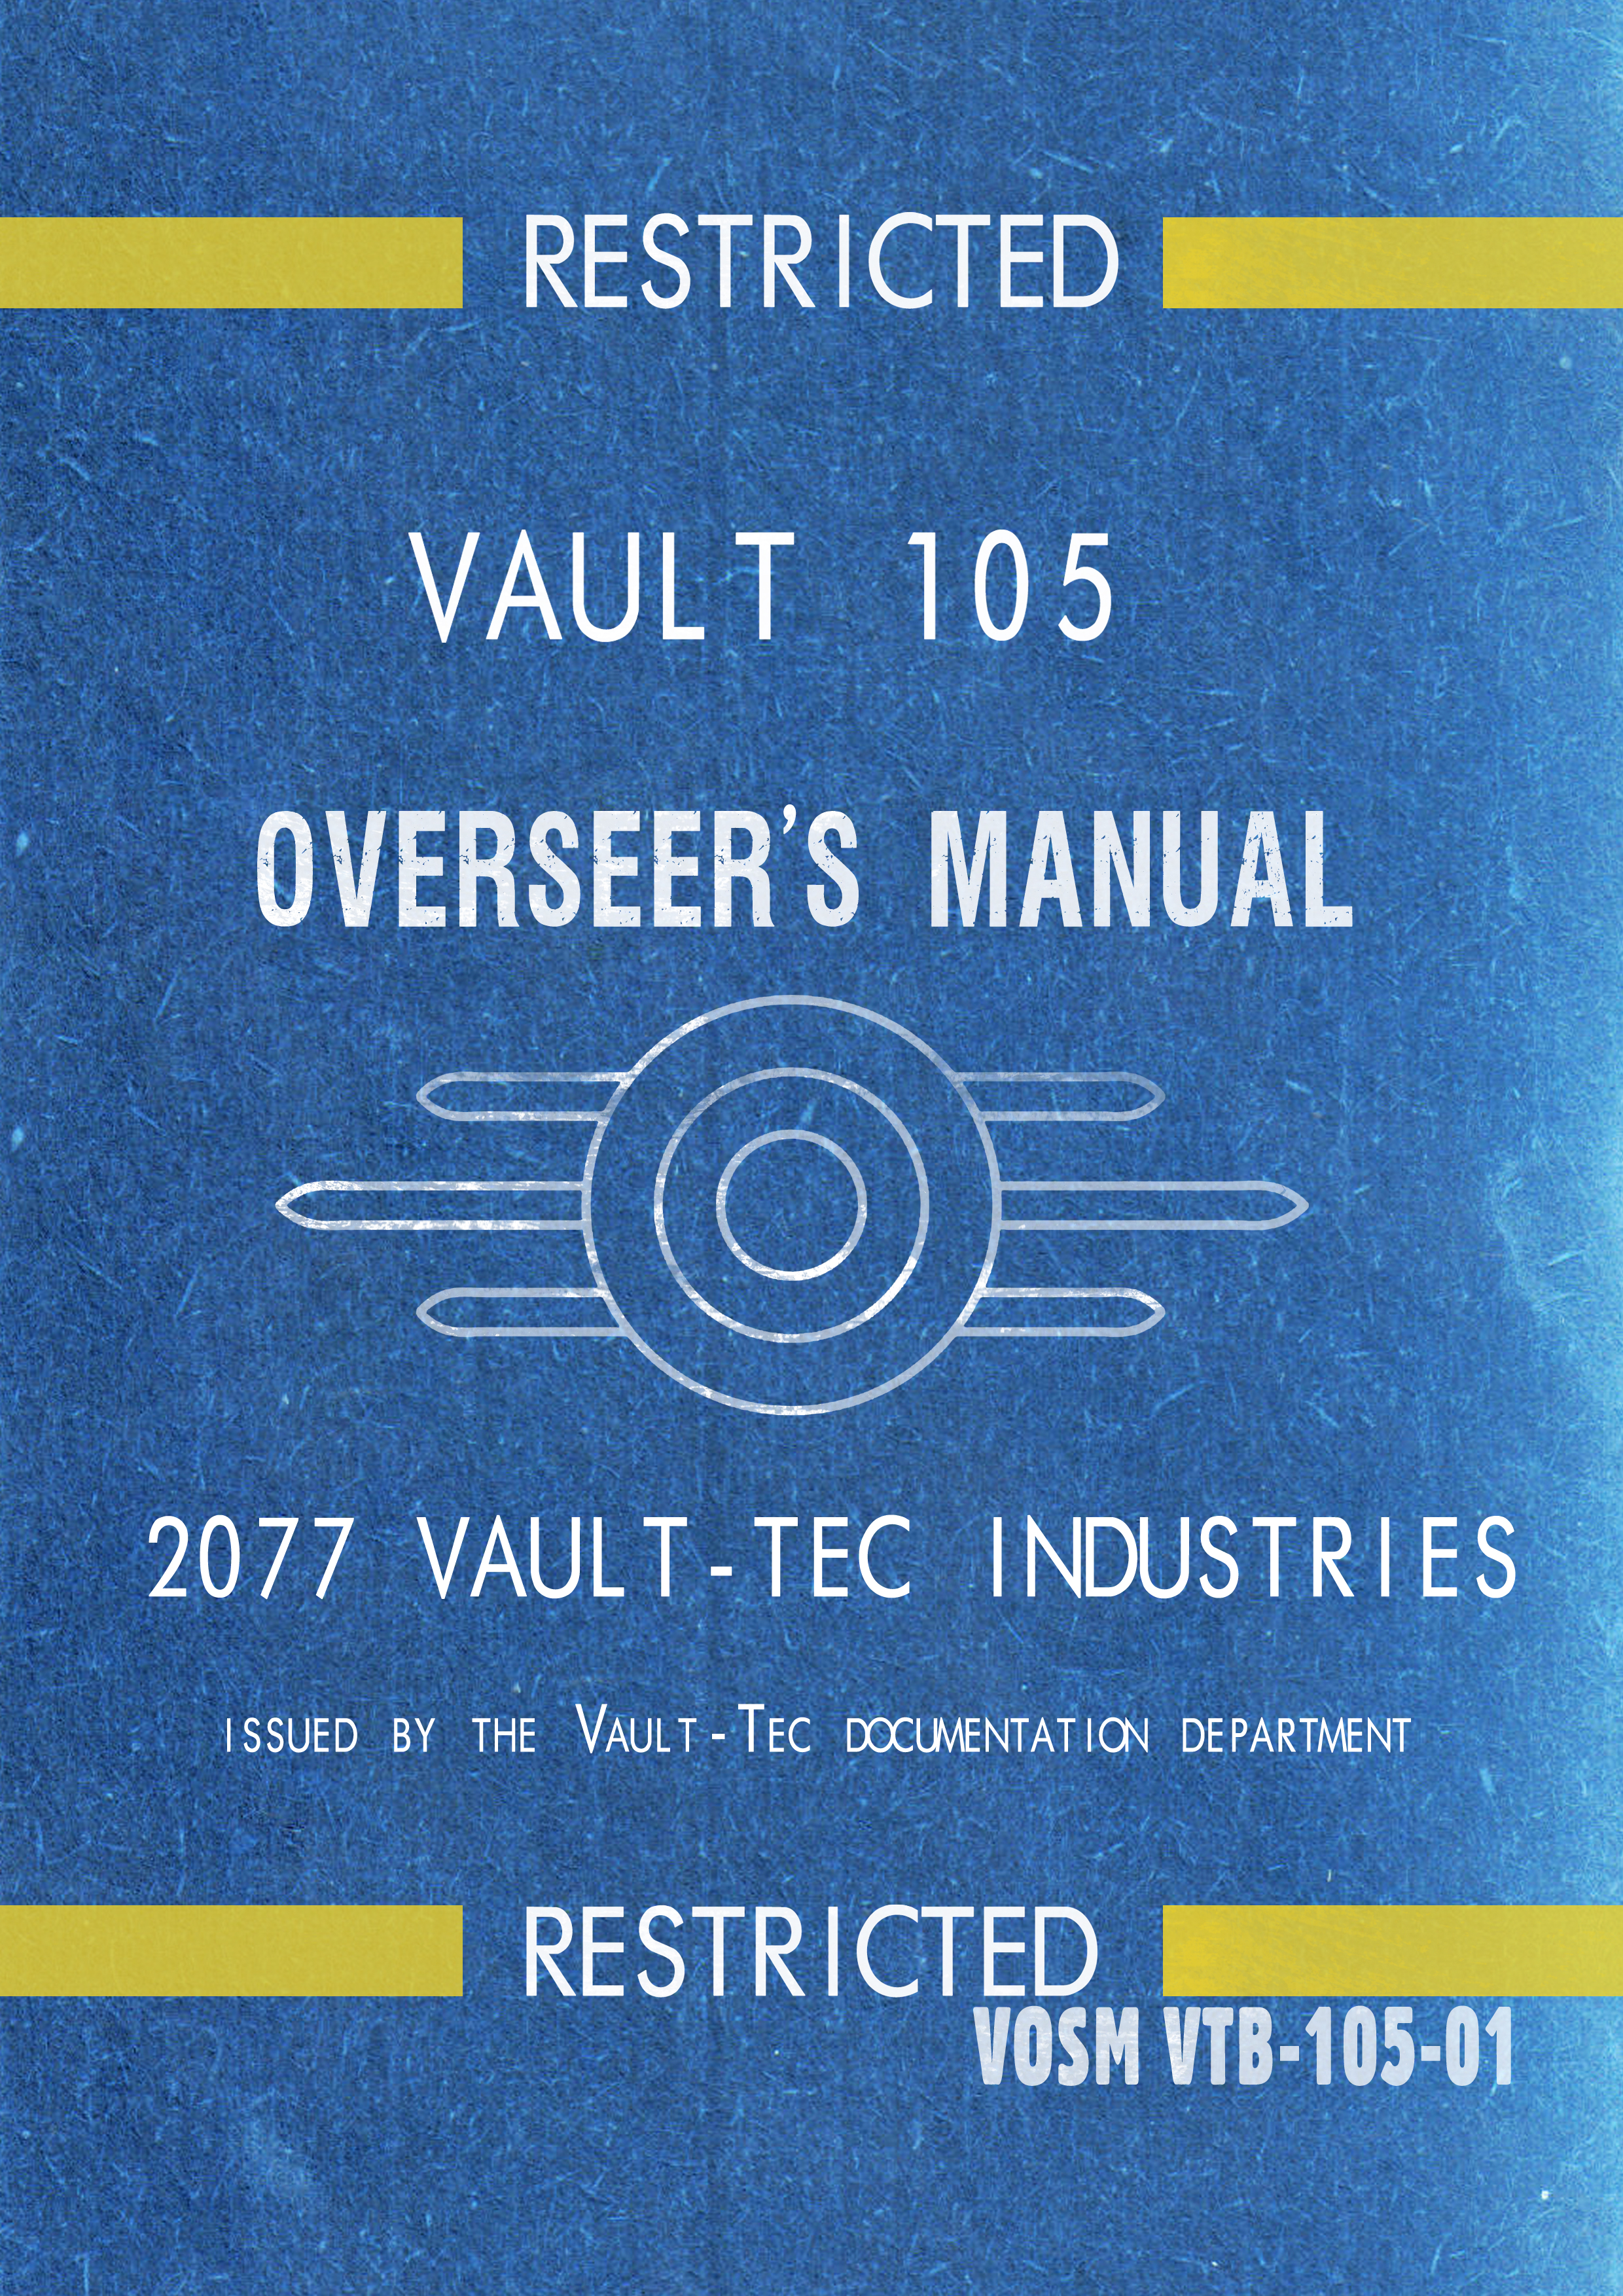 Vault 105 OverSeer's Manual by Crome676